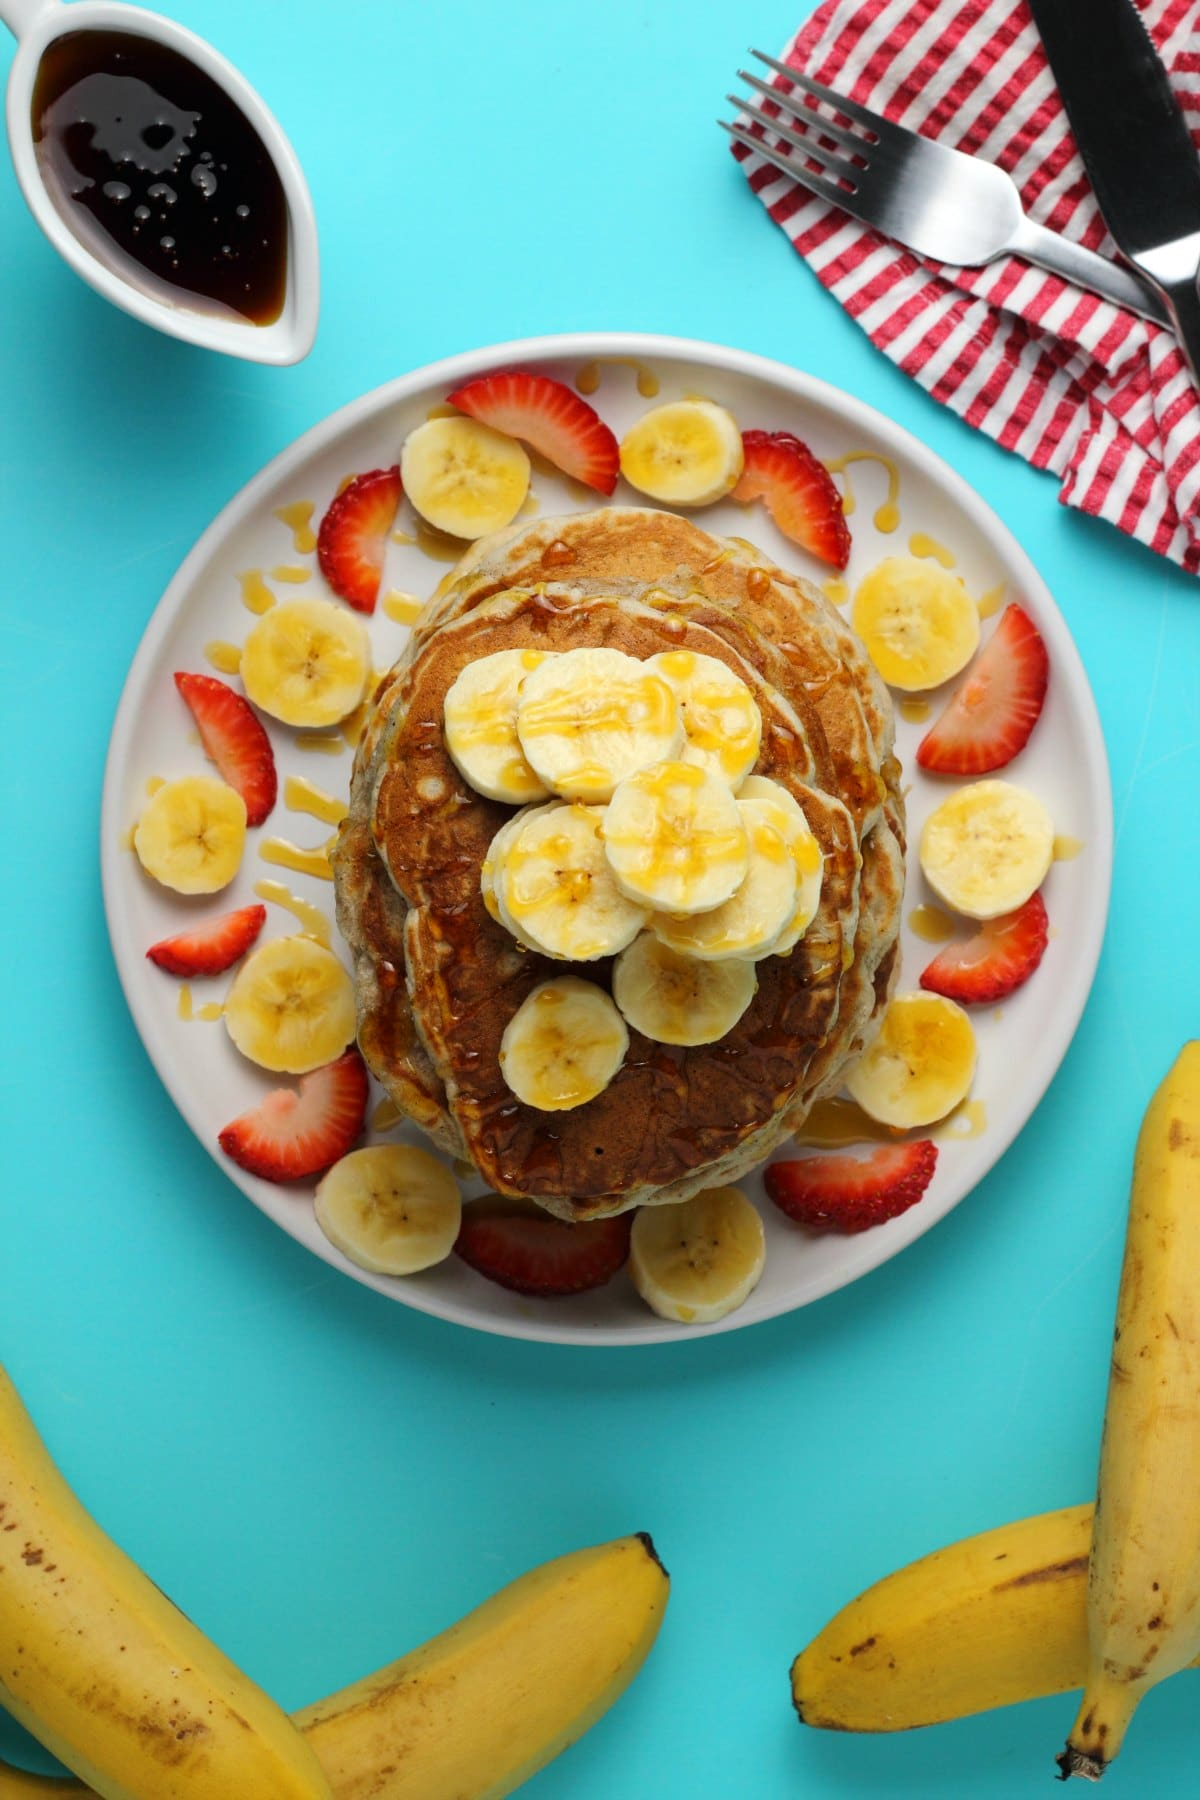 A stack of vegan banana pancakes topped with sliced banana and drizzled with syrup on a white plate.